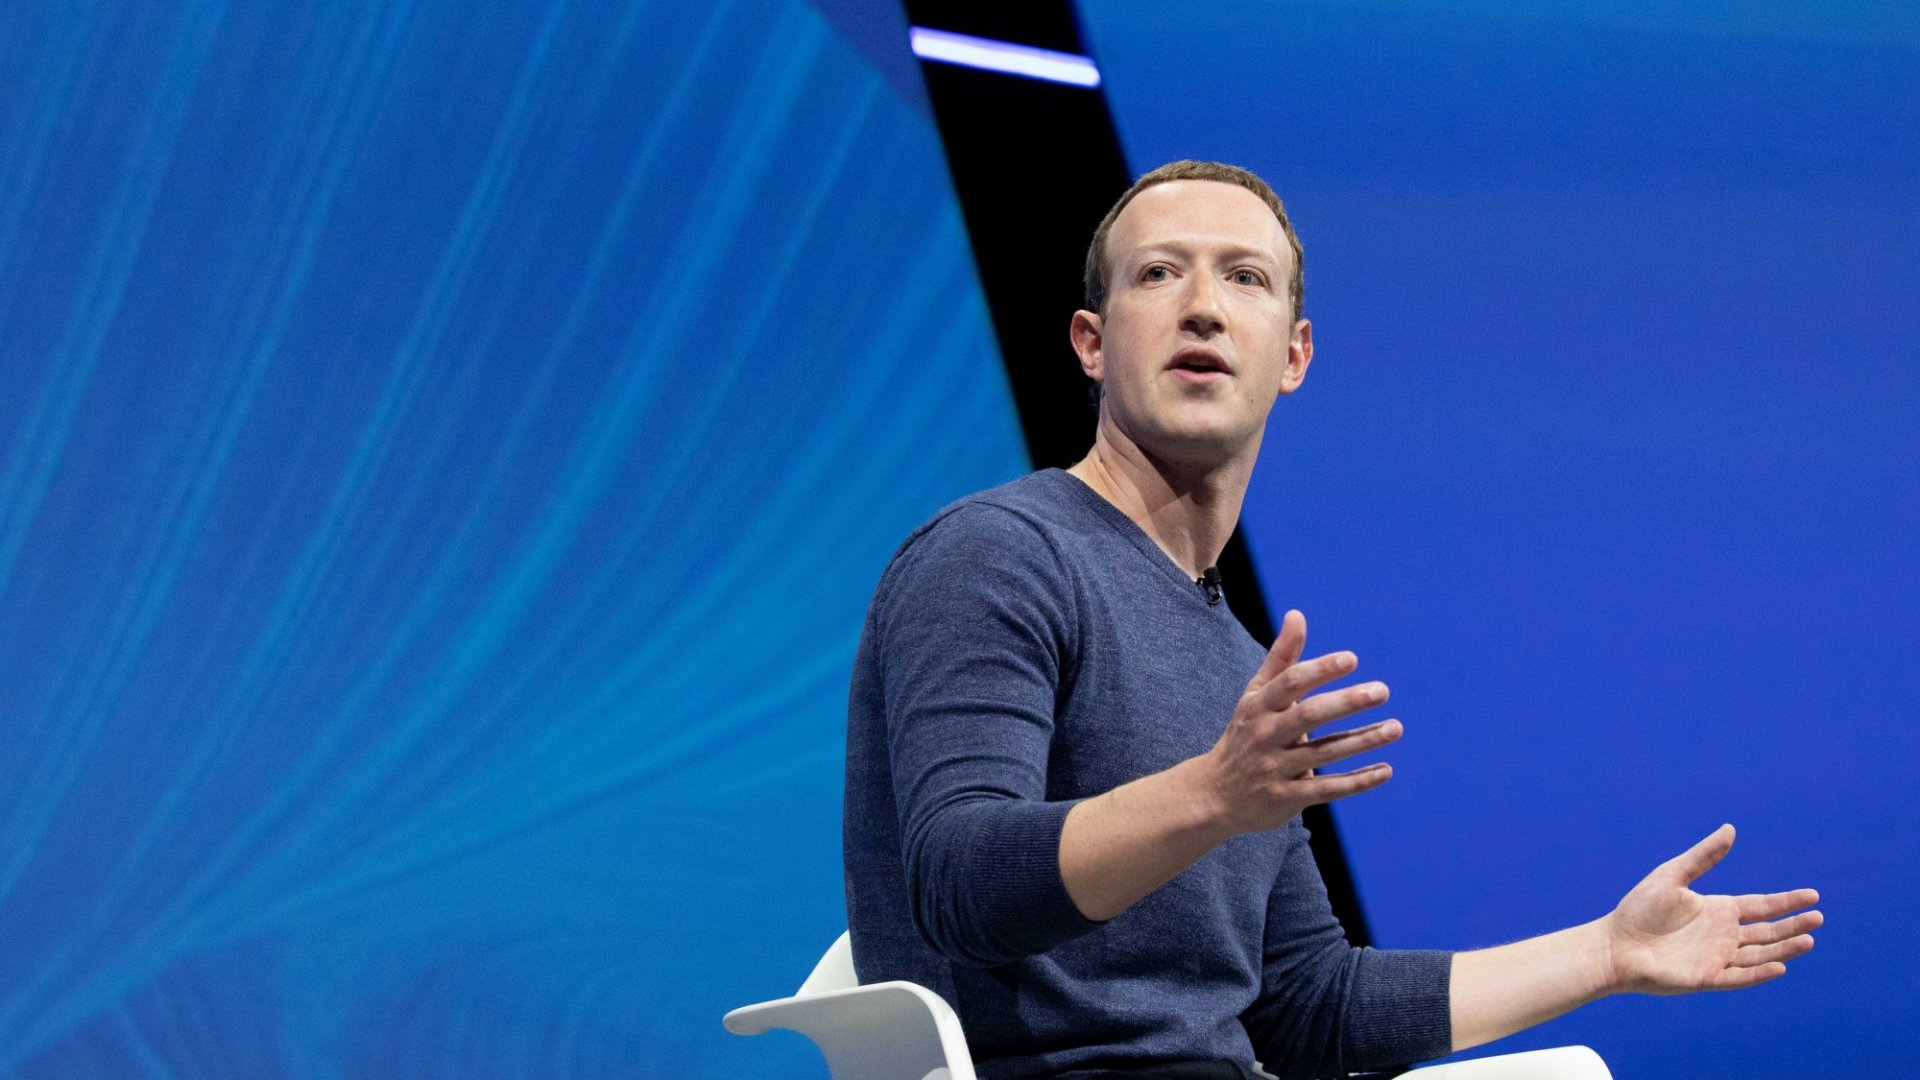 Will Facebook Take Down This Fake Video of Mark Zuckerberg, in Which He Appears to Boast of Stealing People's Data?